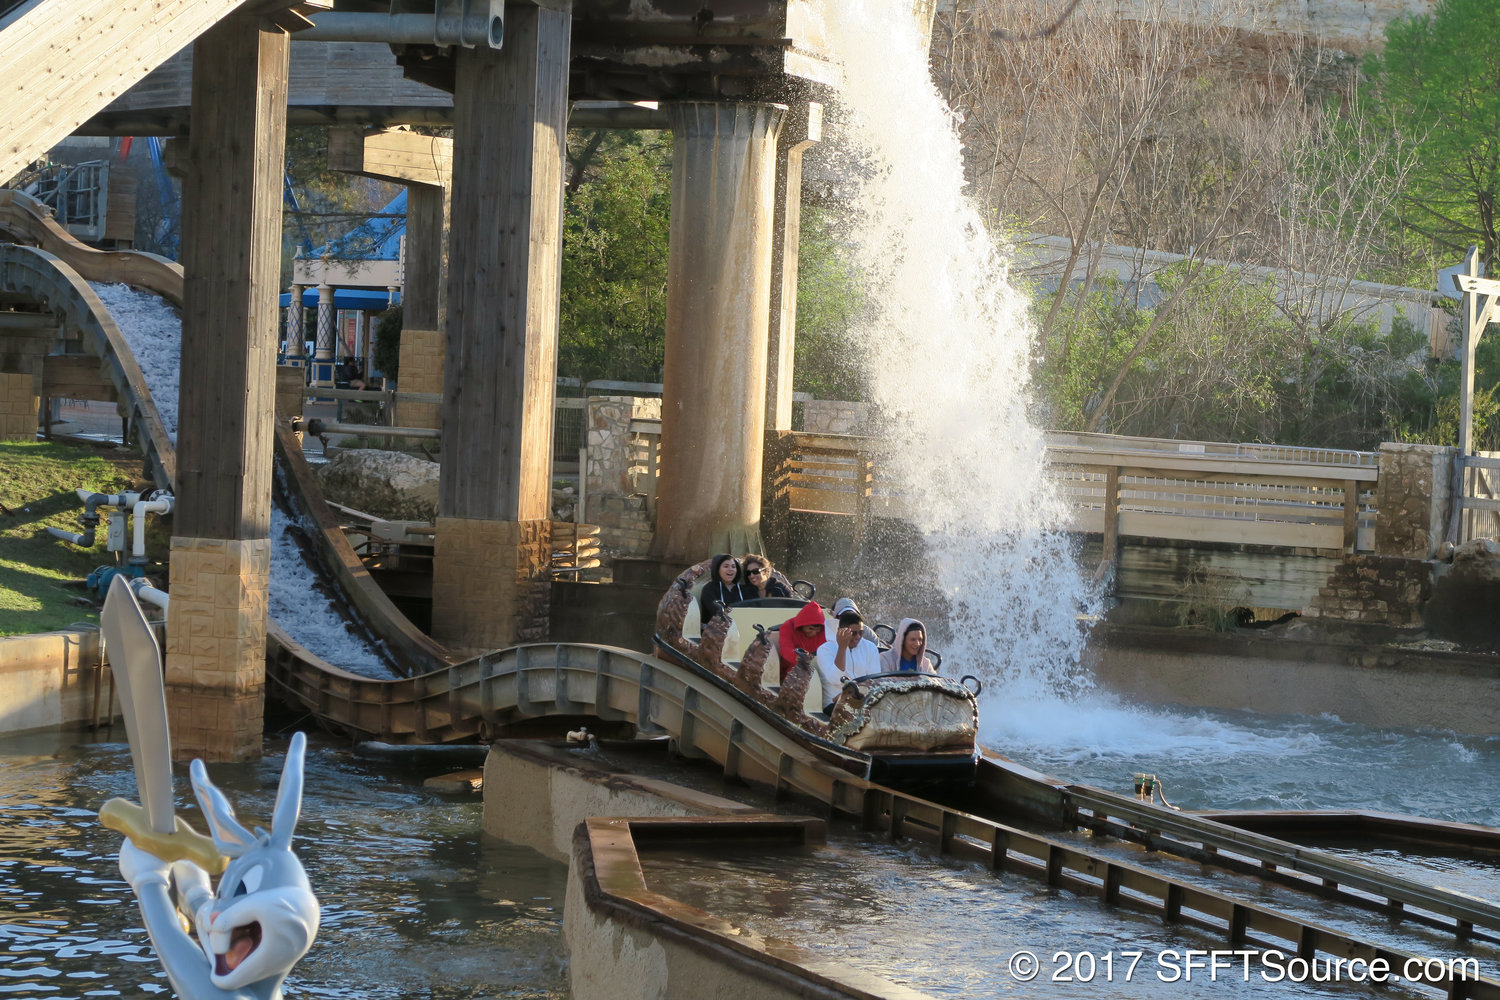 Bugs' White Water Rapids is located in Spassburg.